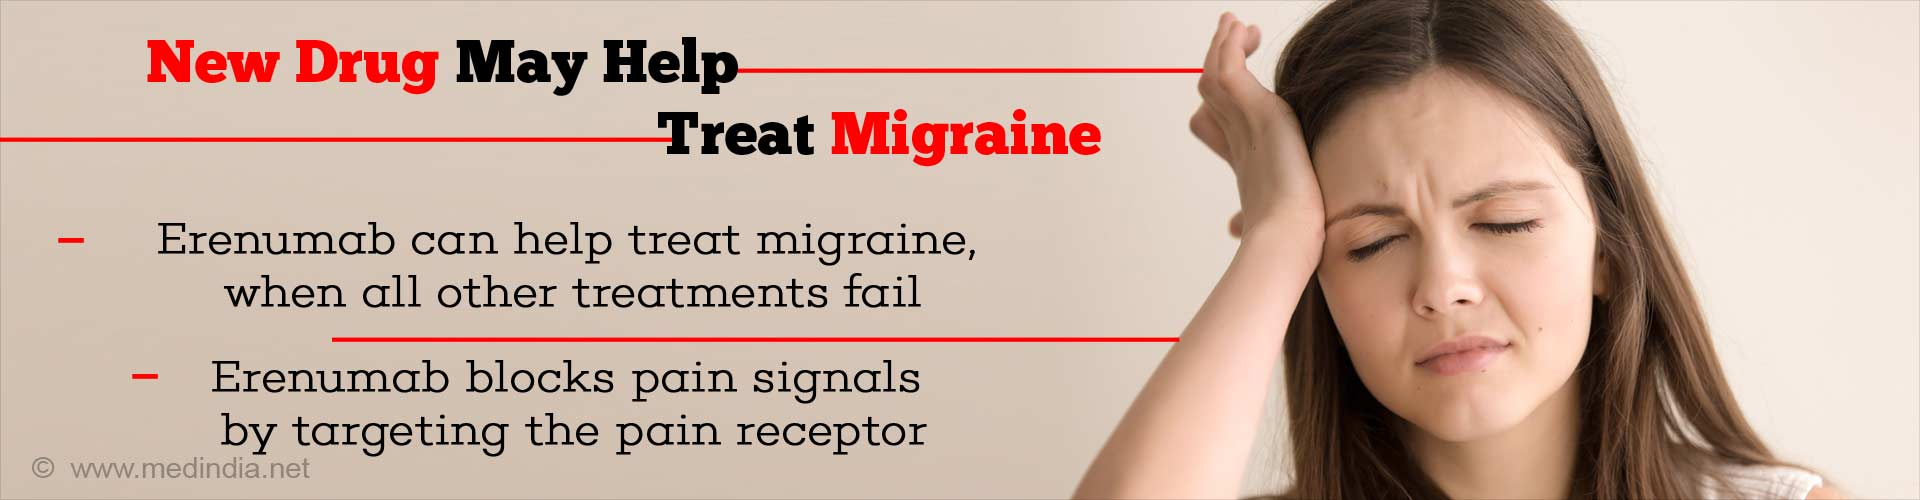 new drug may help treat migraine